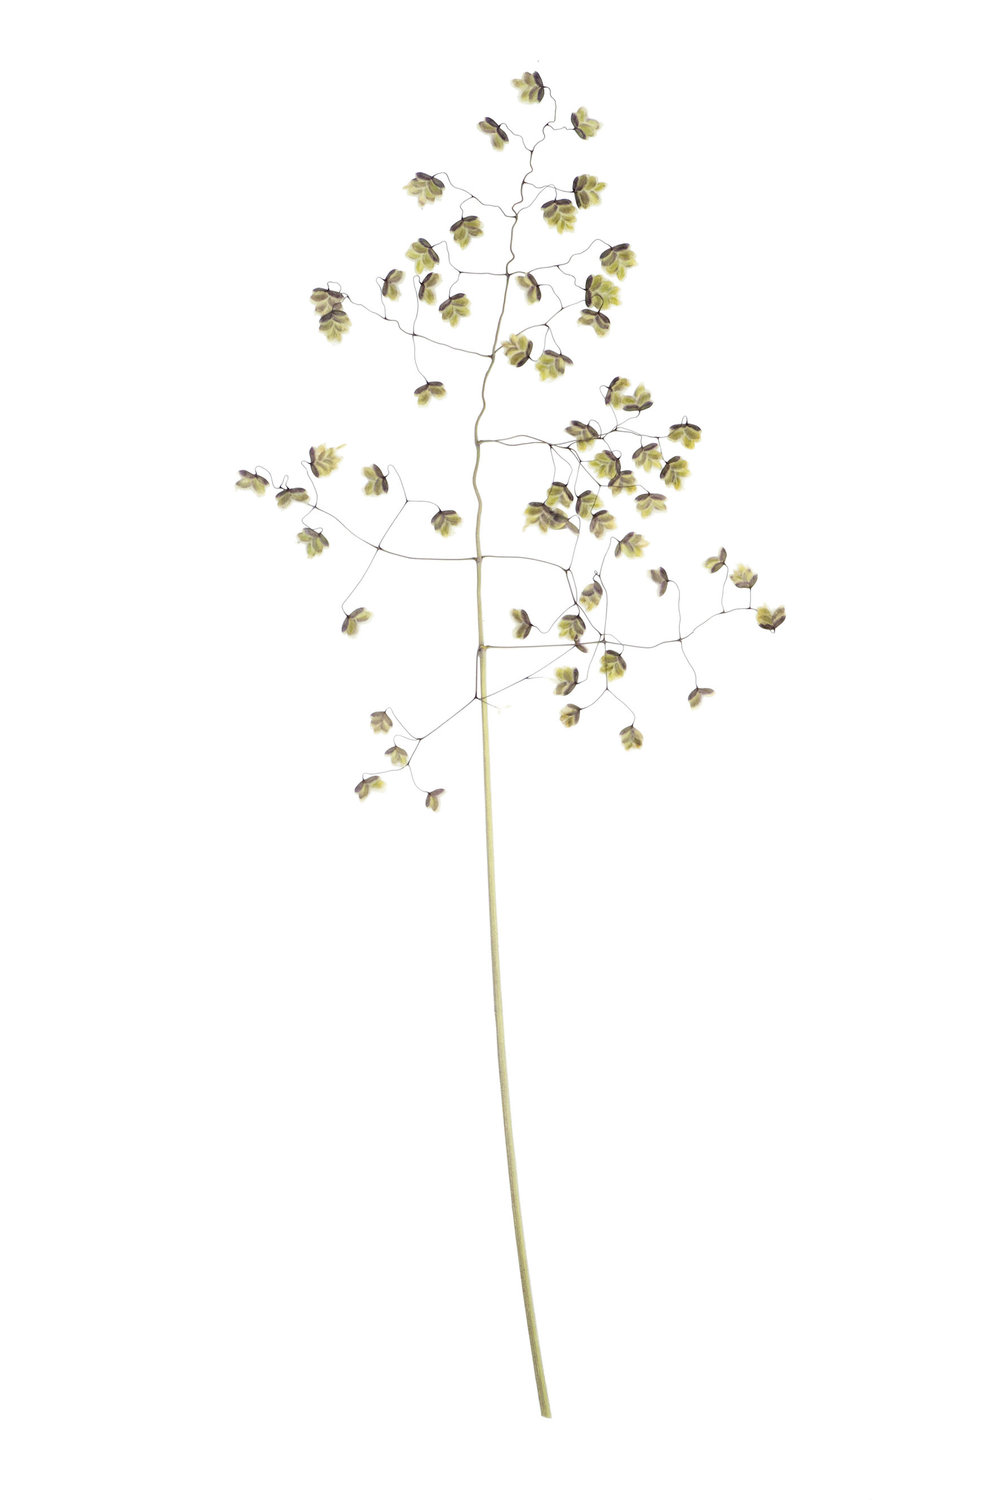 New! Briza media / Quaking Grass